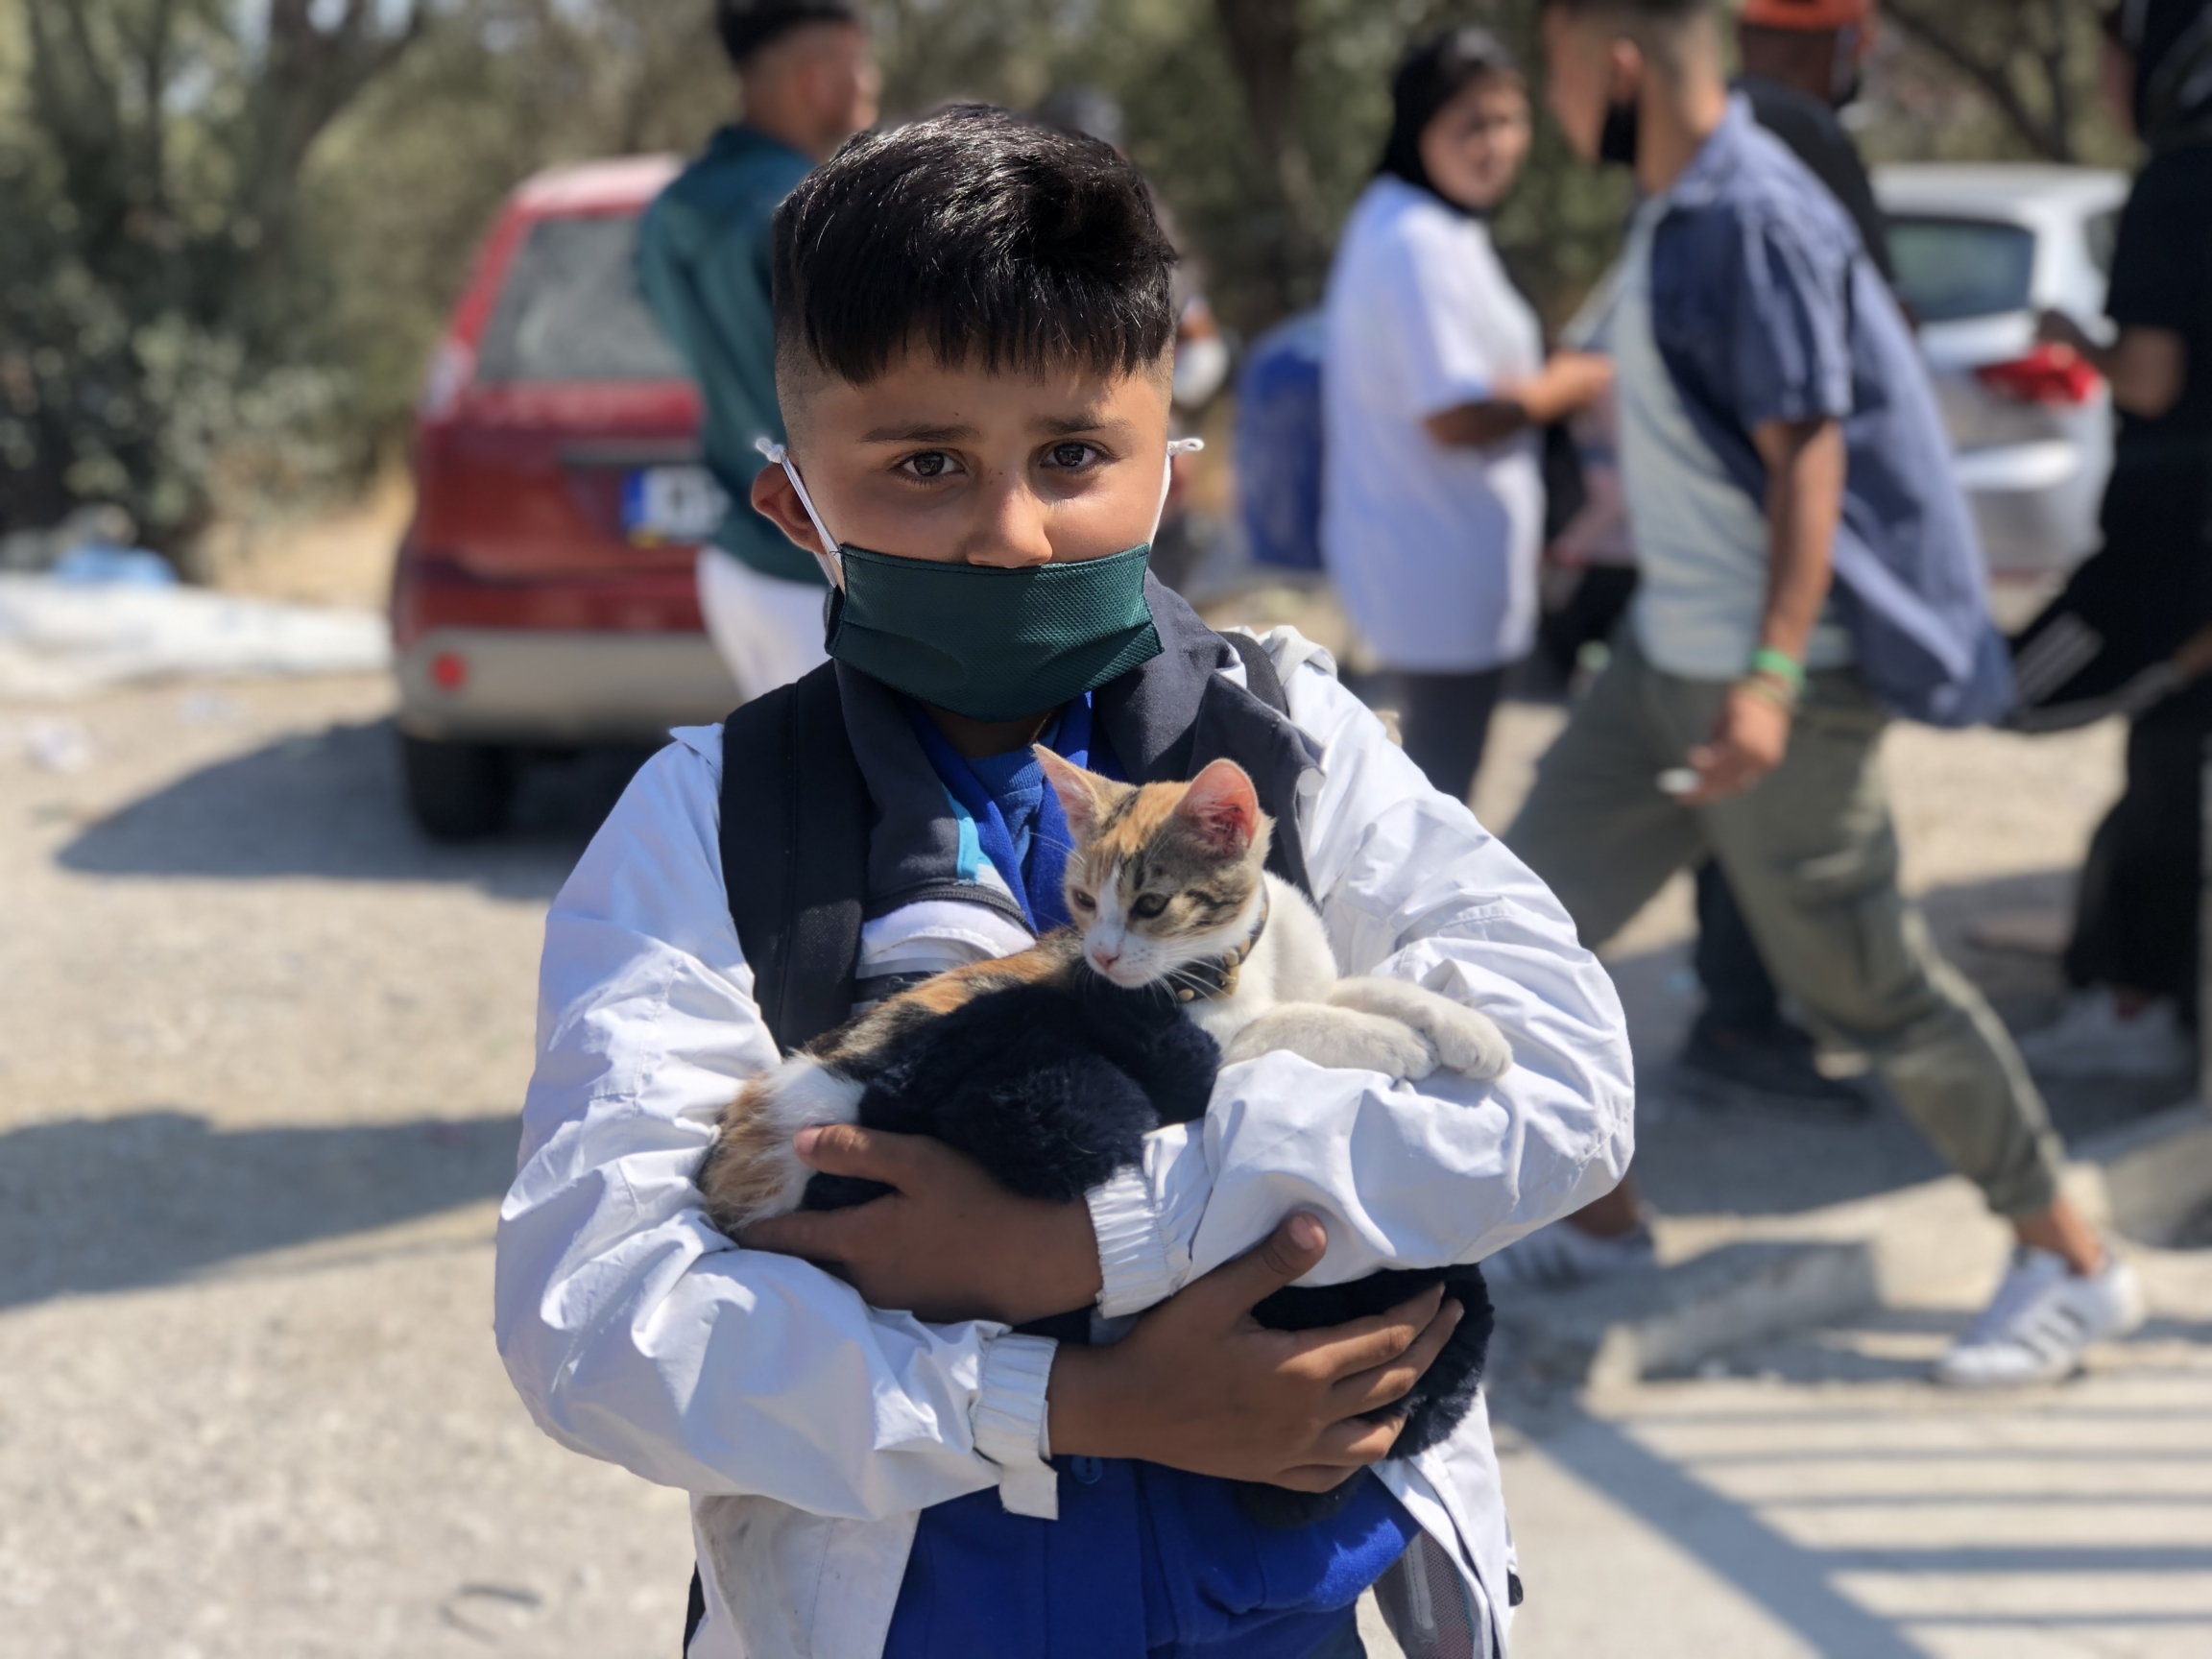 Mohammad, a young,Afghan asylum-seeker, found acat he named Kuchulu while at Moria. He worrieshe won'tbe able to bring his feline friend into the new camp.